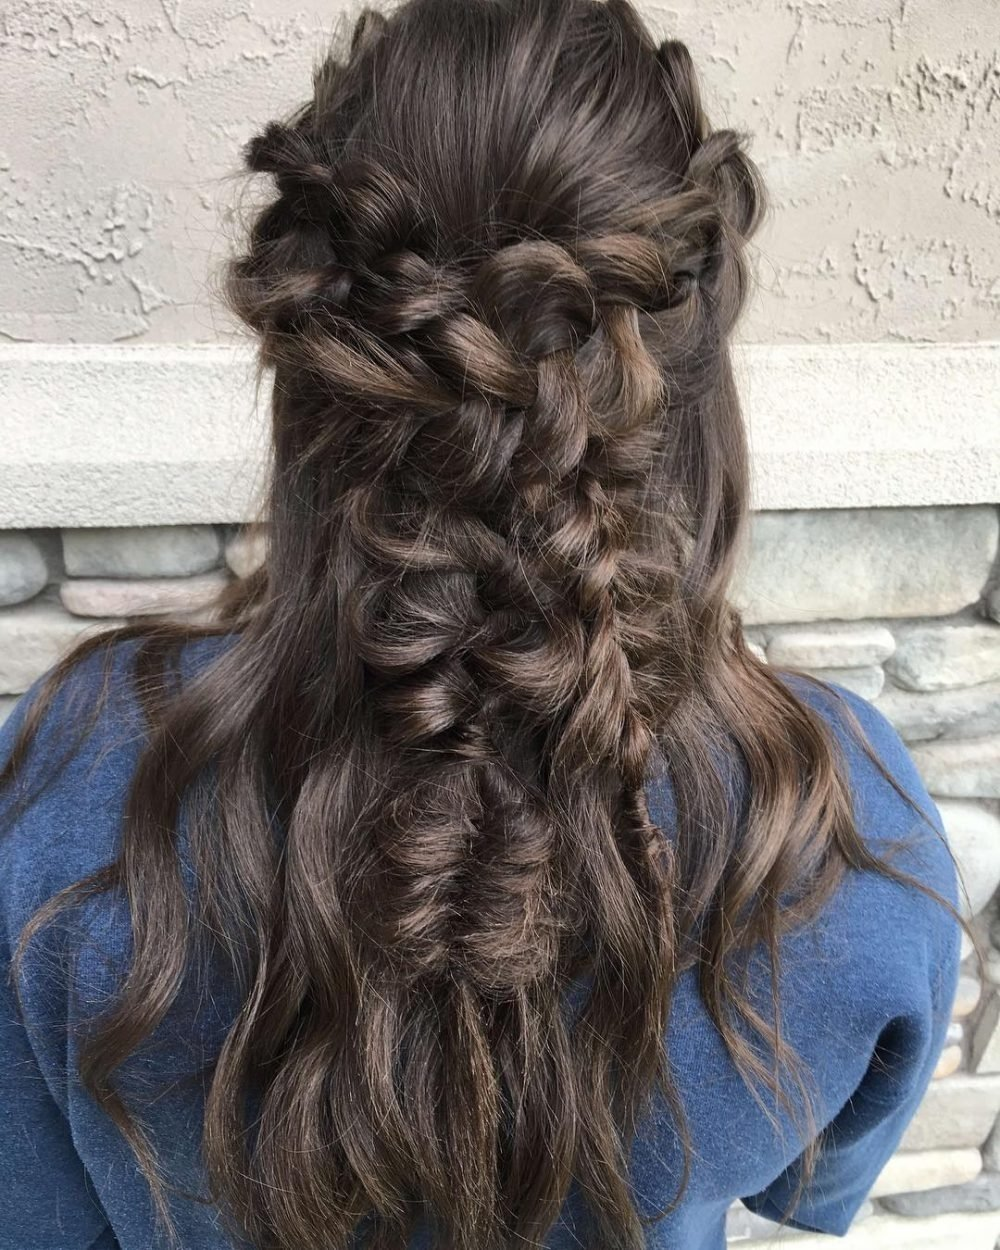 10 Most Recommended Prom Hair Ideas For Long Hair 29 prom hairstyles for long hair that are gorgeous updated for 2018 1 2020